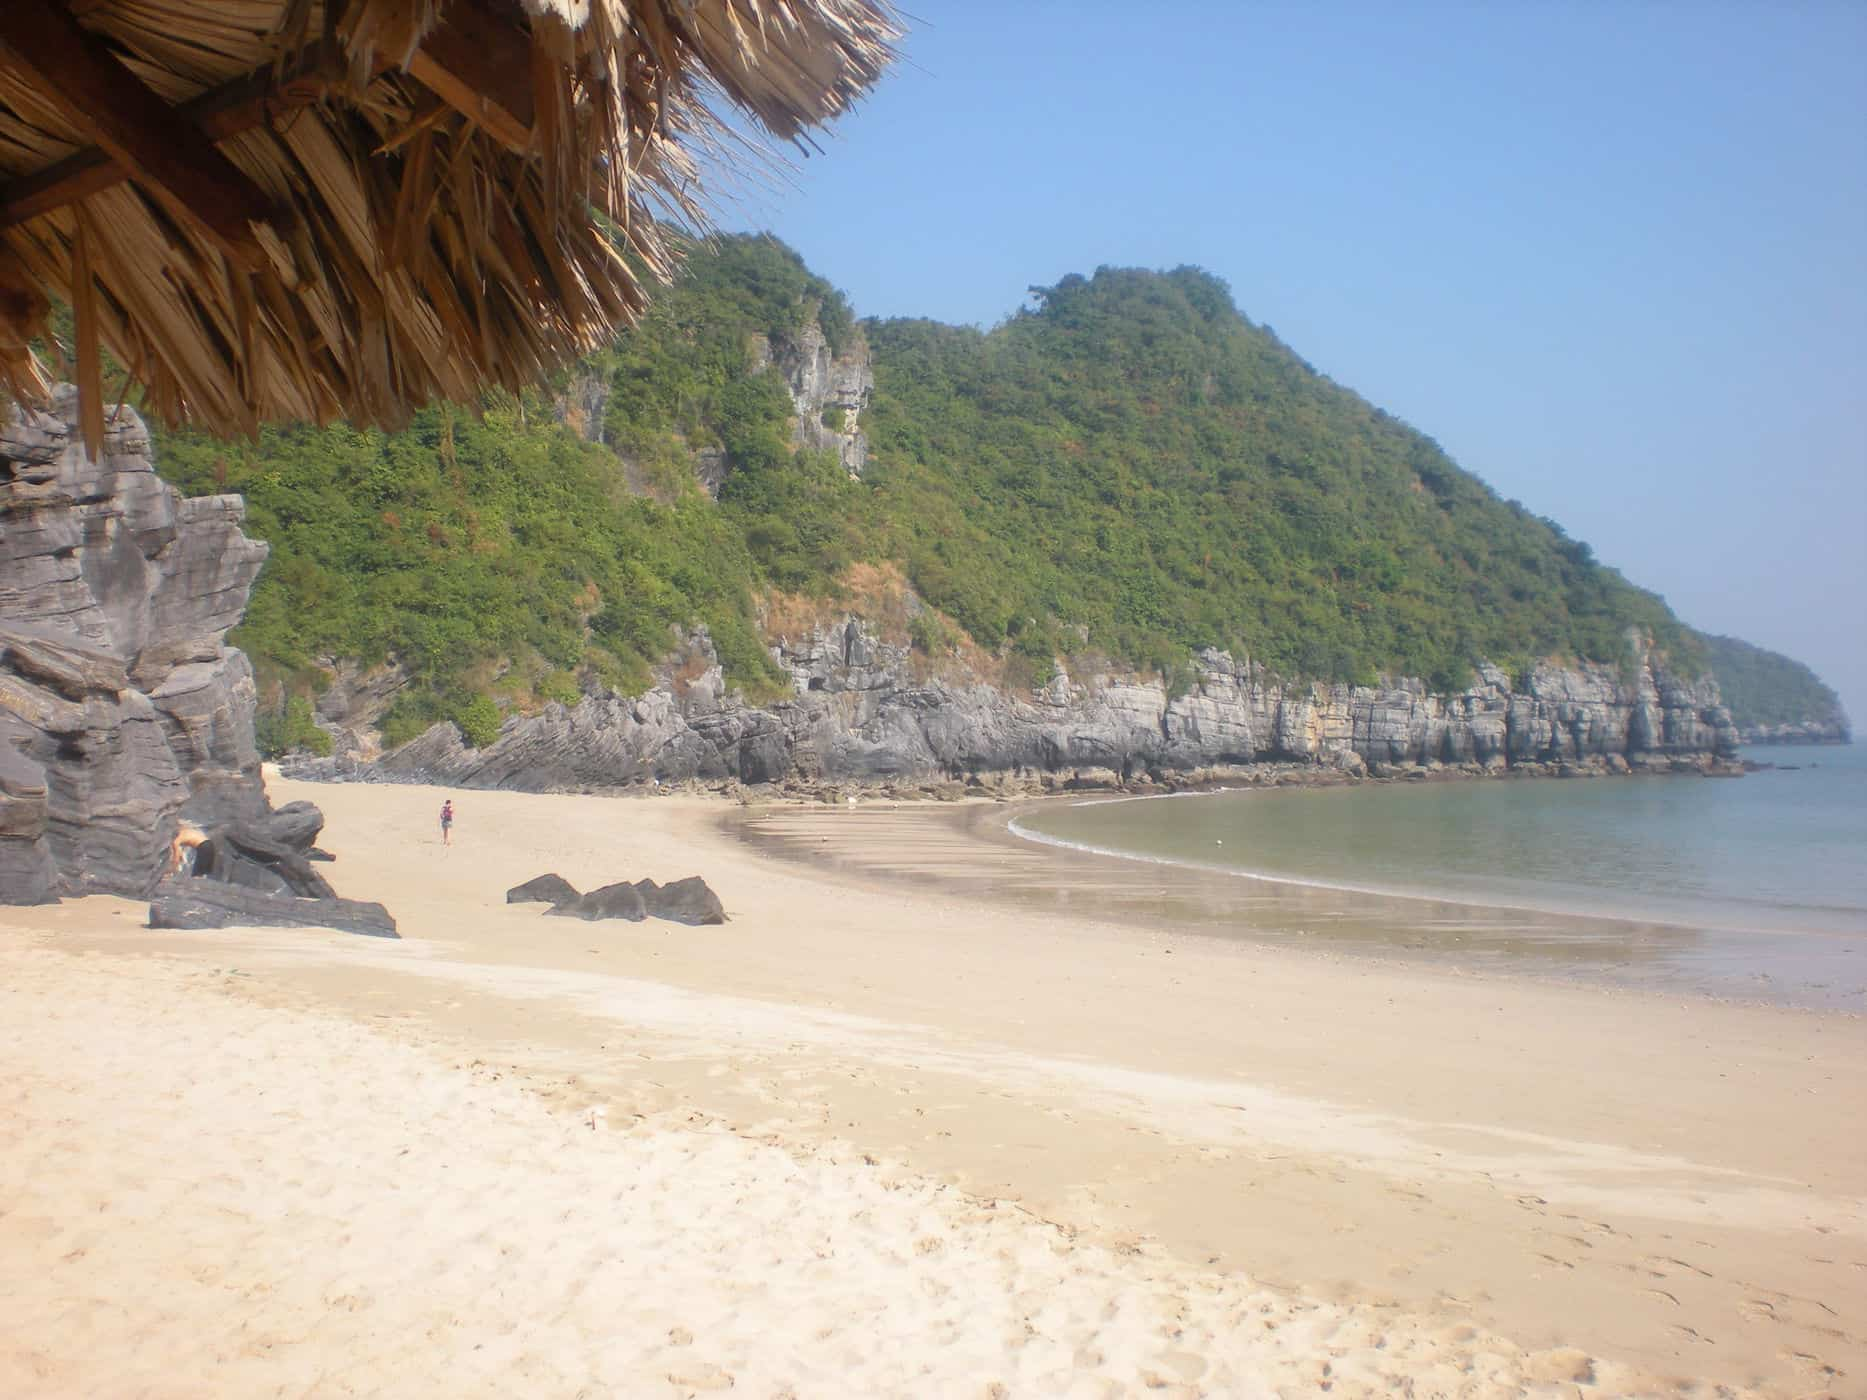 The uncrowded beaches of Cat Ba Island, Vietnam.